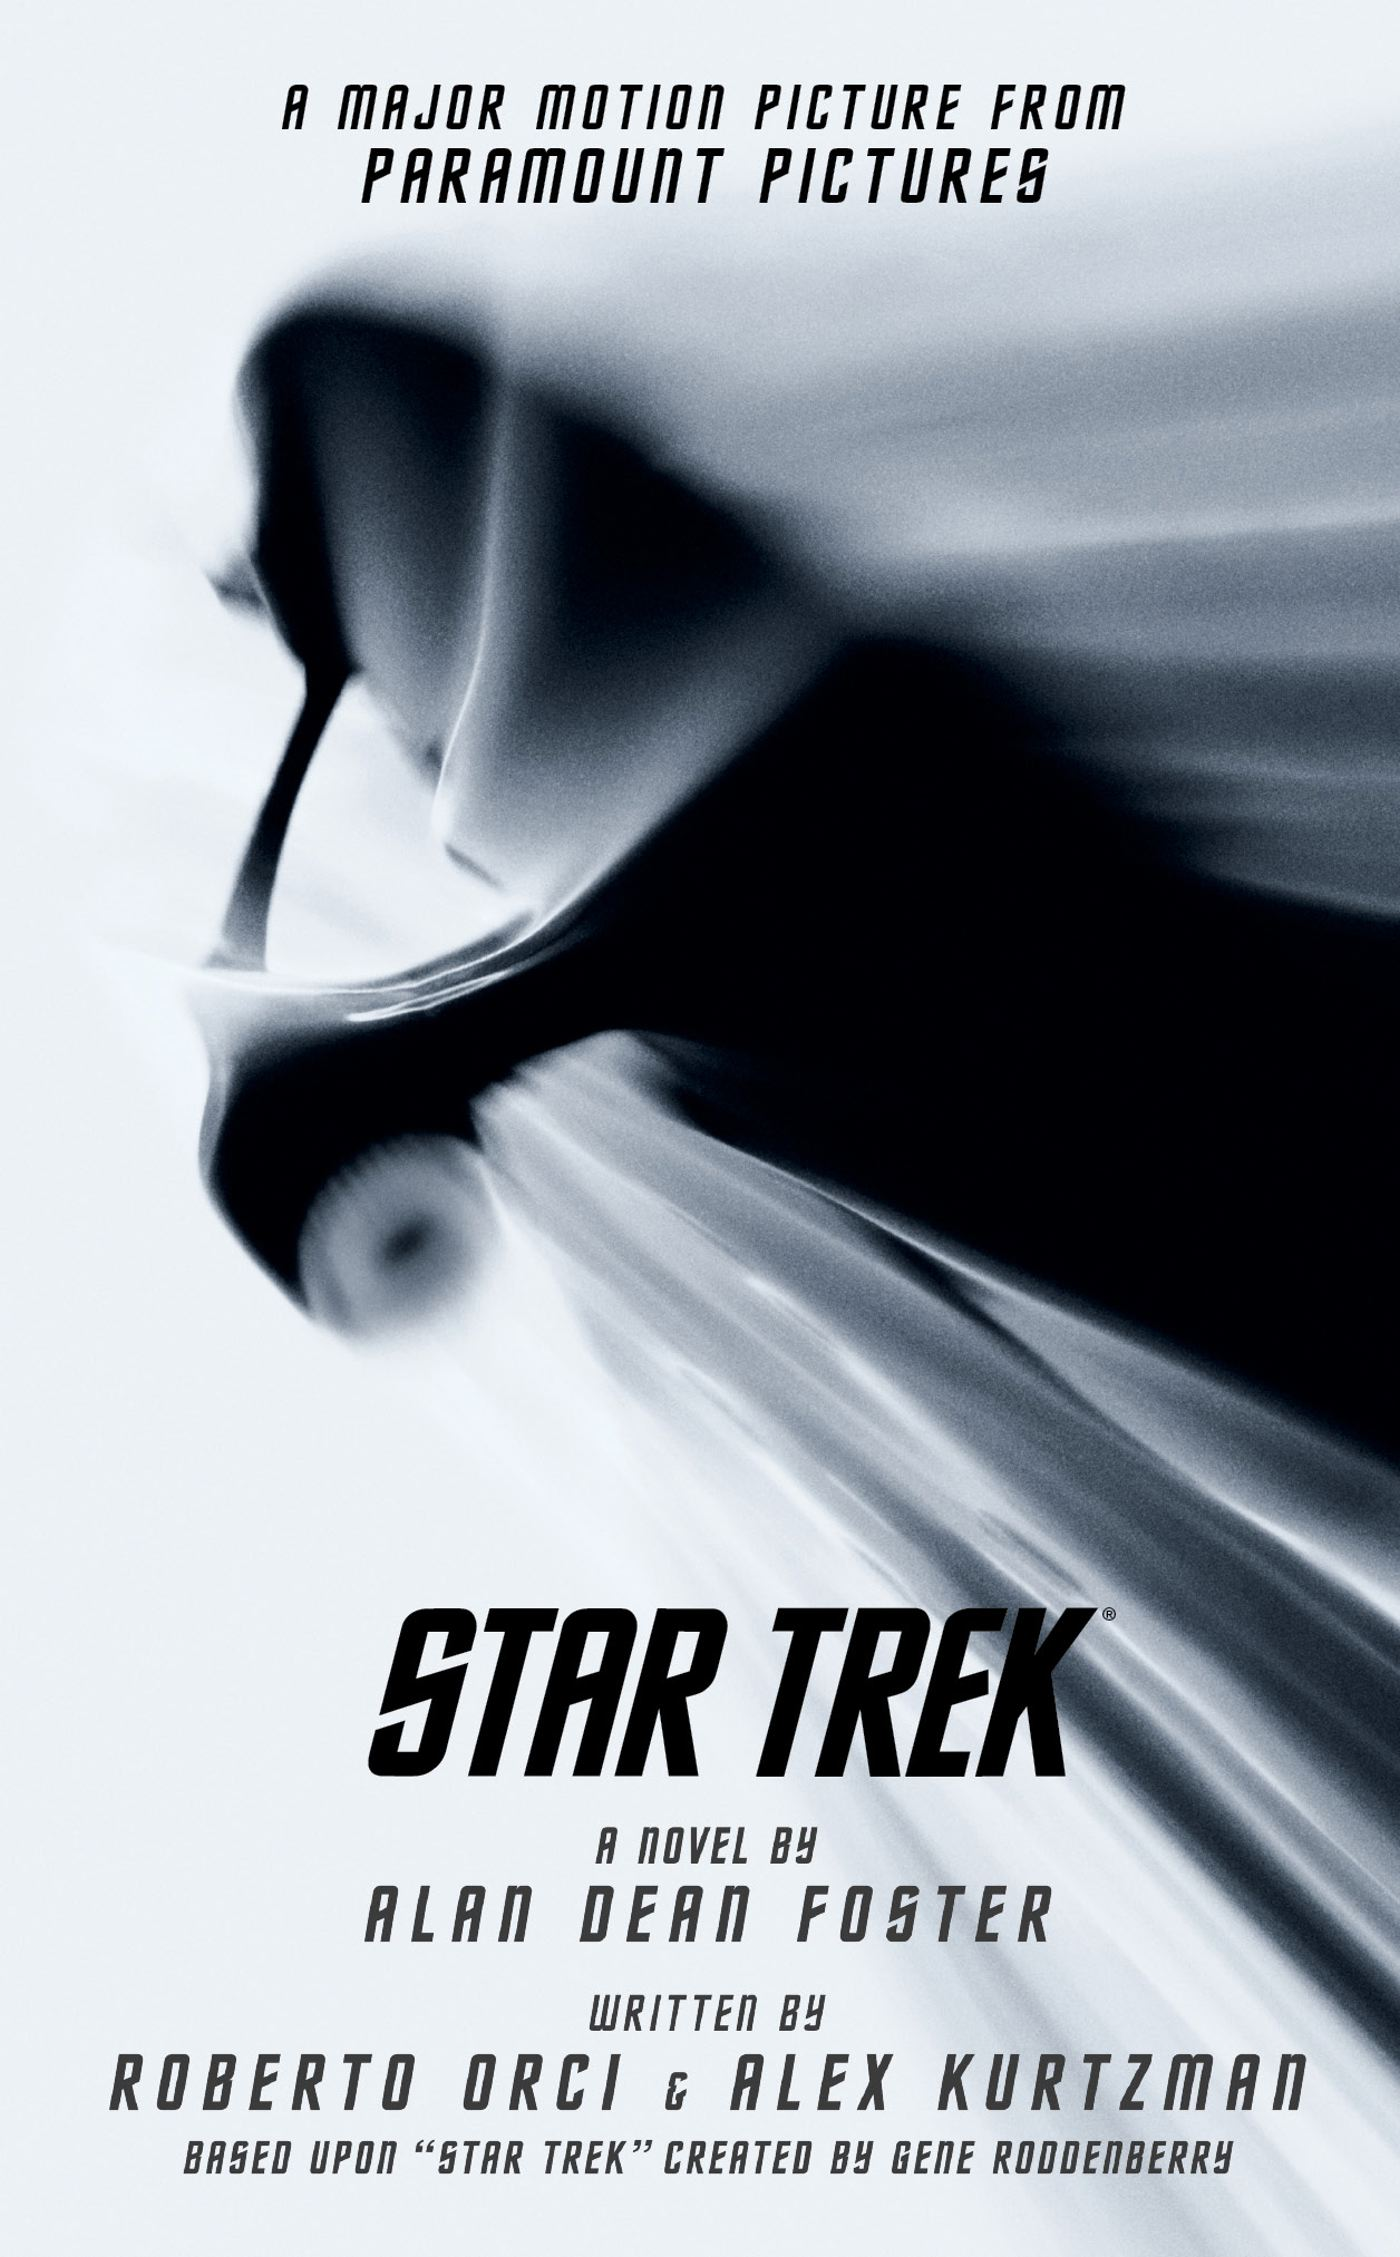 Star trek movie tie in novelization 2009 9781439194874 hr